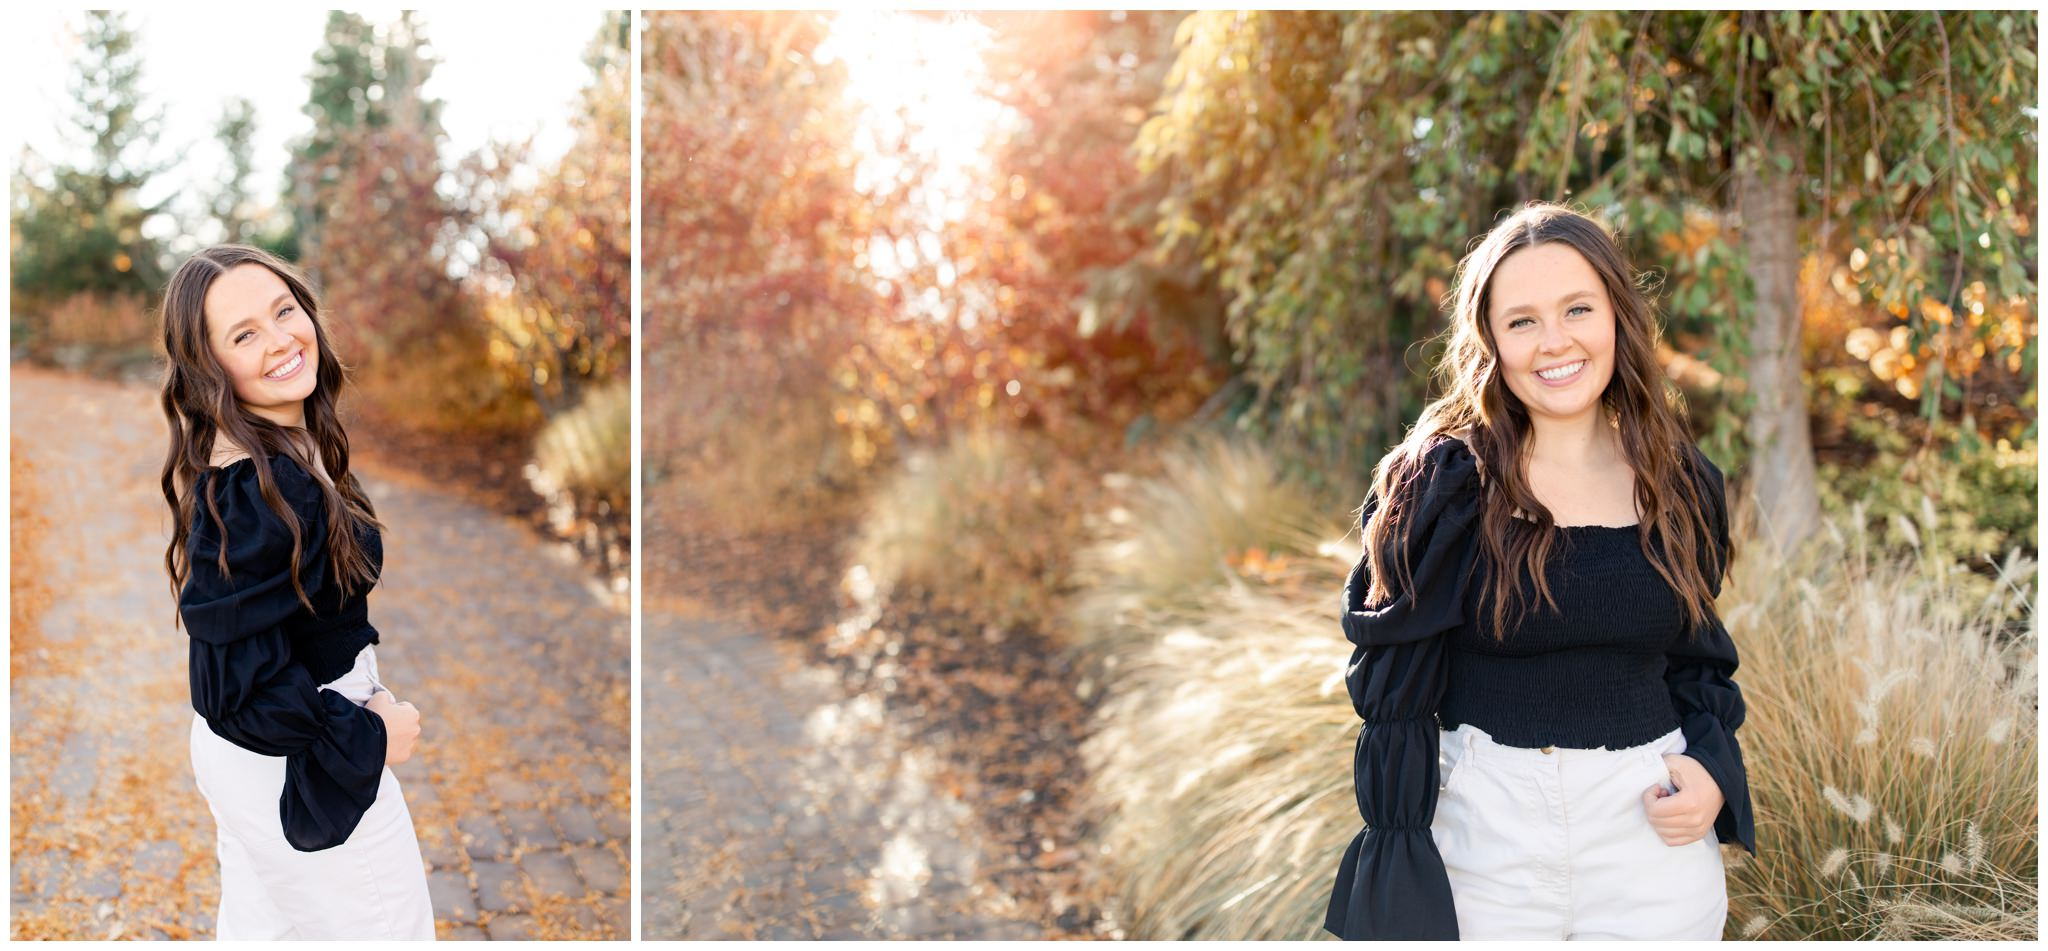 Idaho Falls and Rexburg senior pictures in the fall time